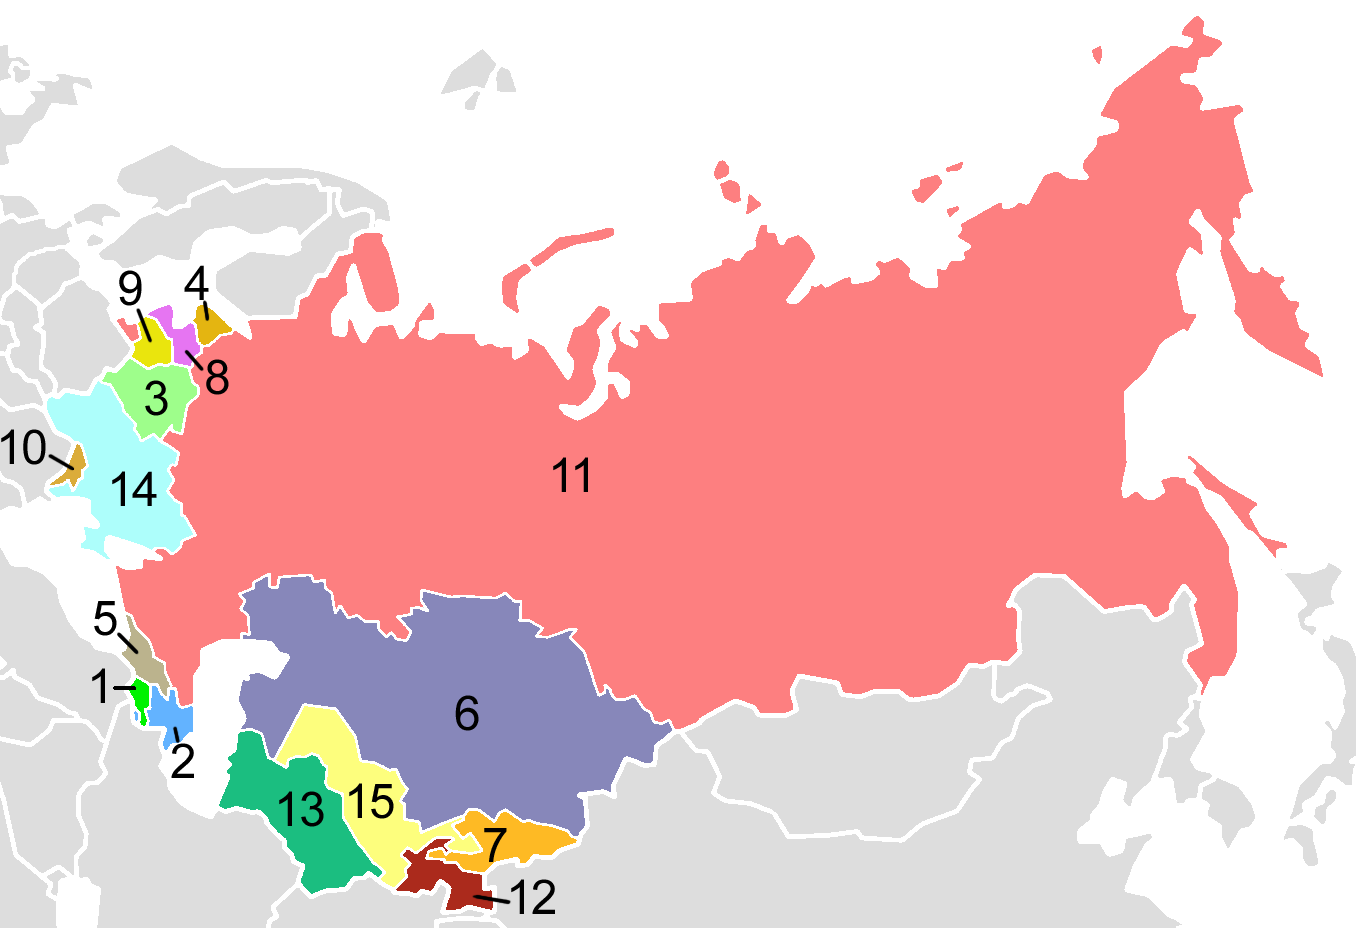 Post-Soviet states in English alphabetical order: